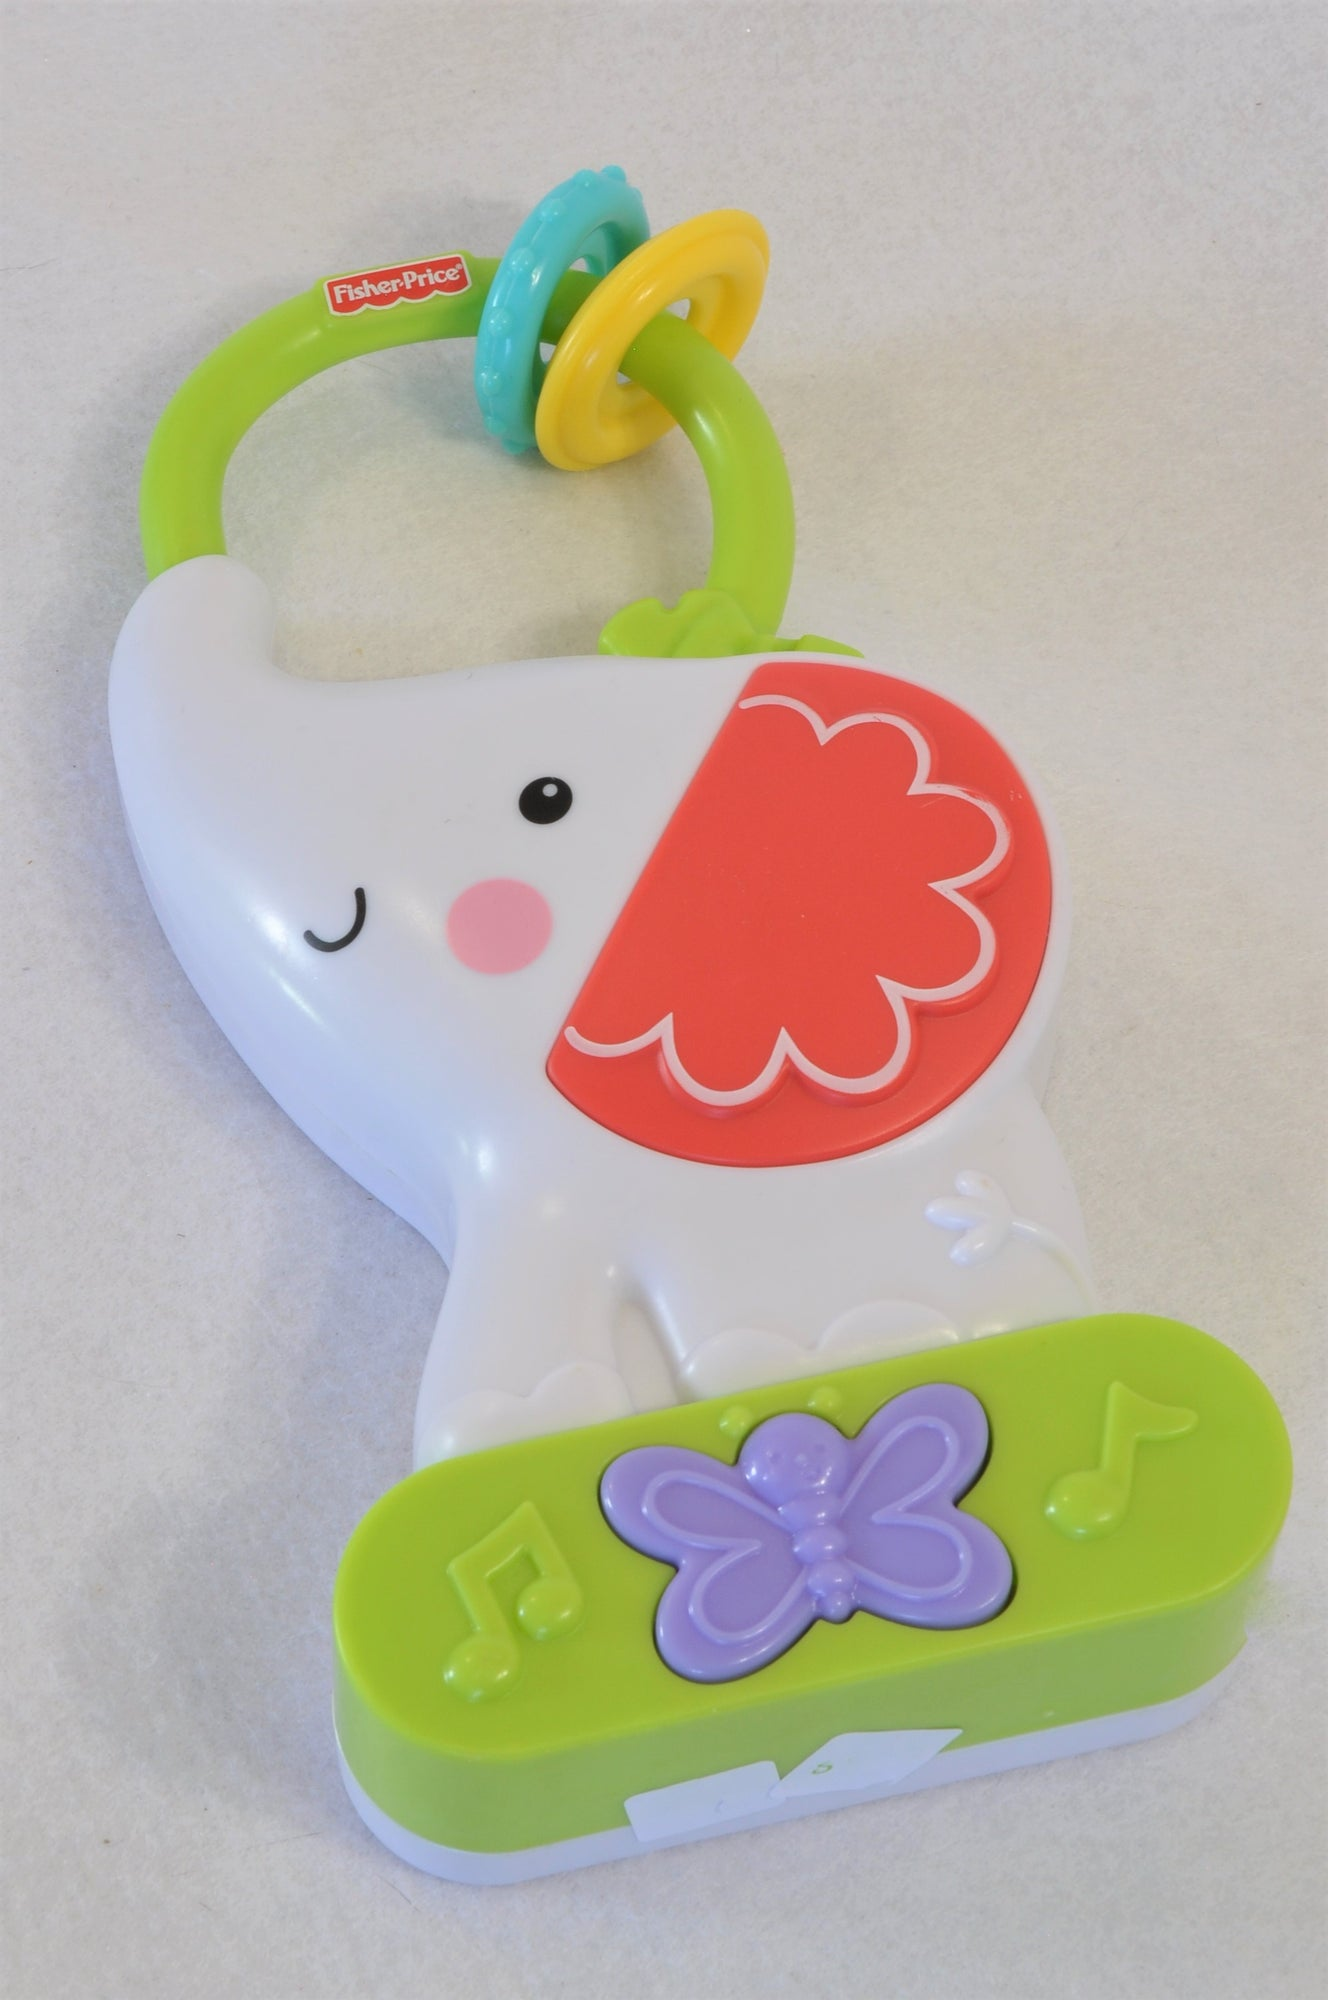 Fisher Price White Elephant Musical Nightlight Toy Unisex N-B to 1 year